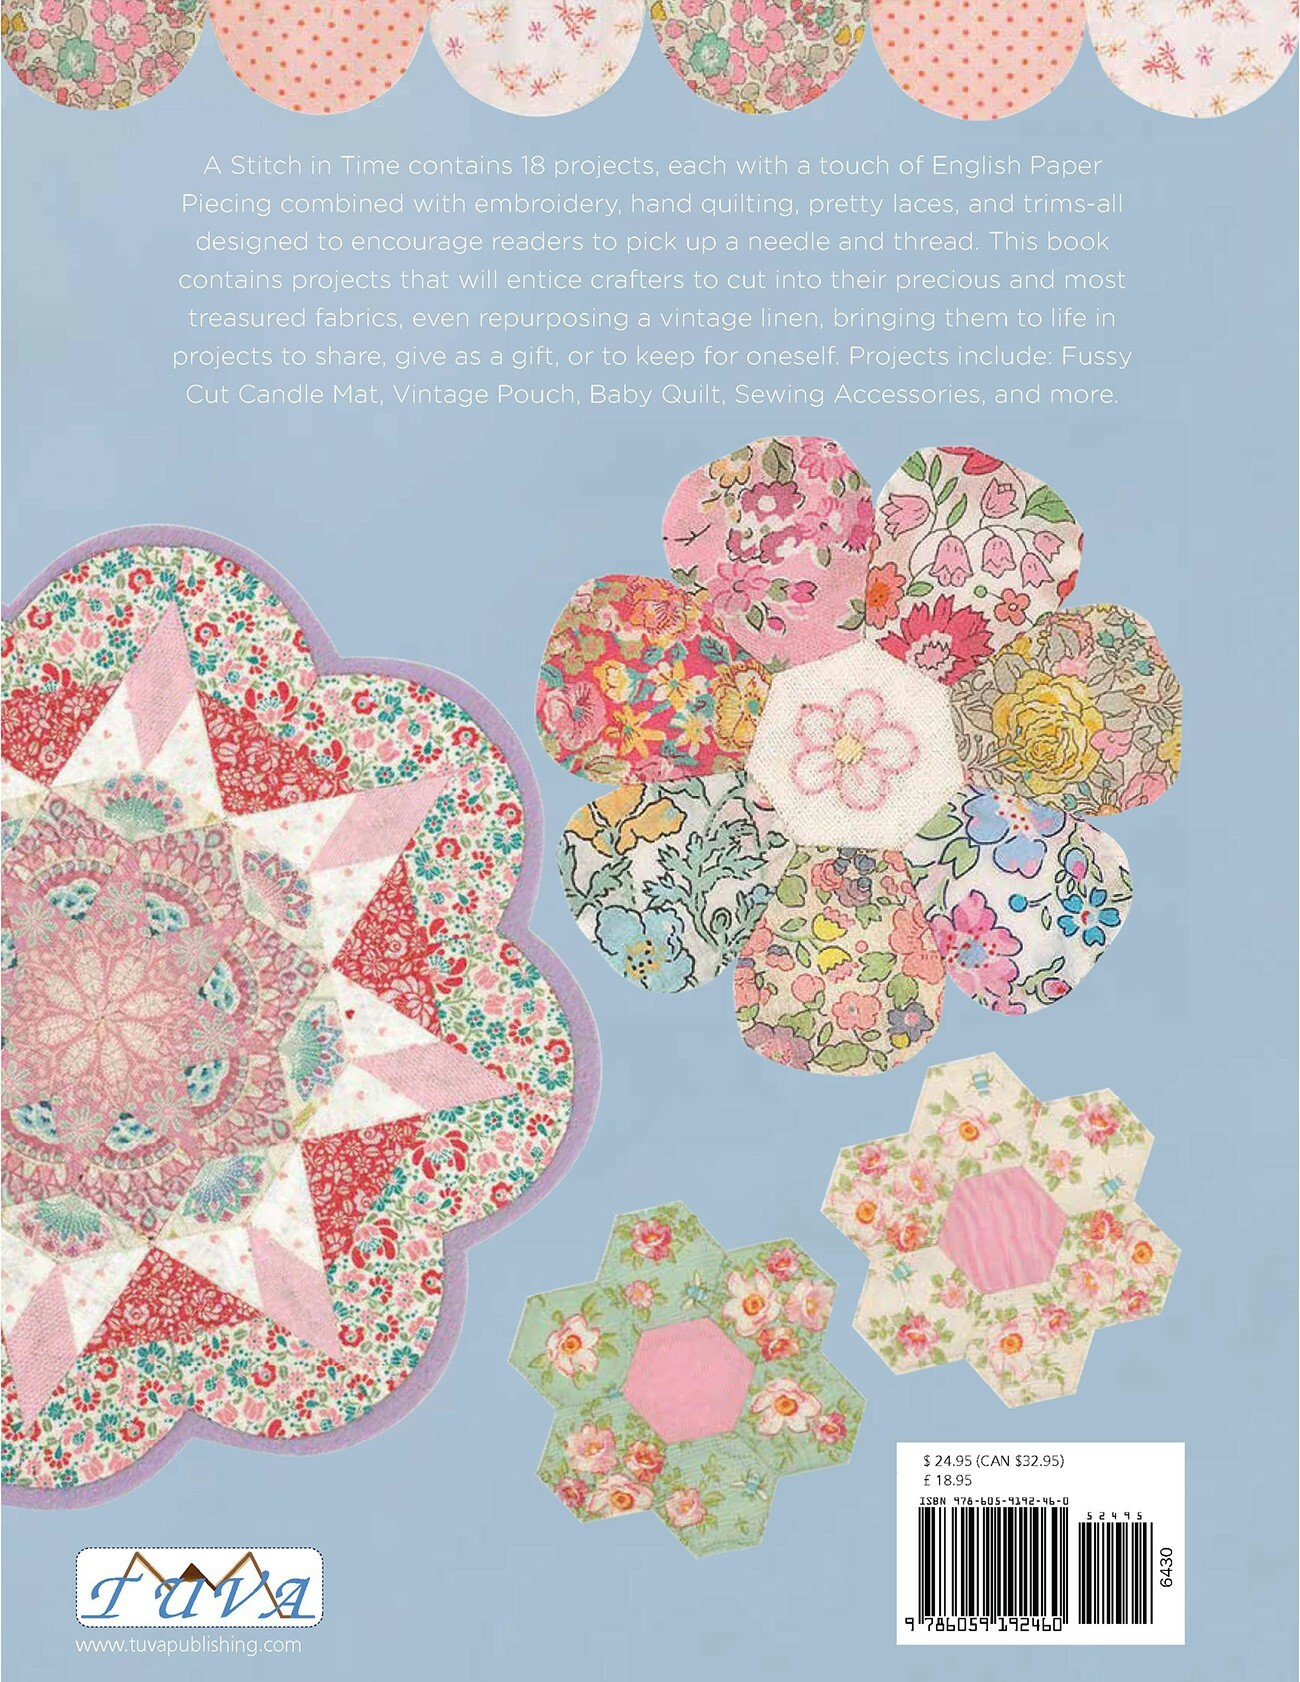 English Paper Piecing: A Stitch In Time